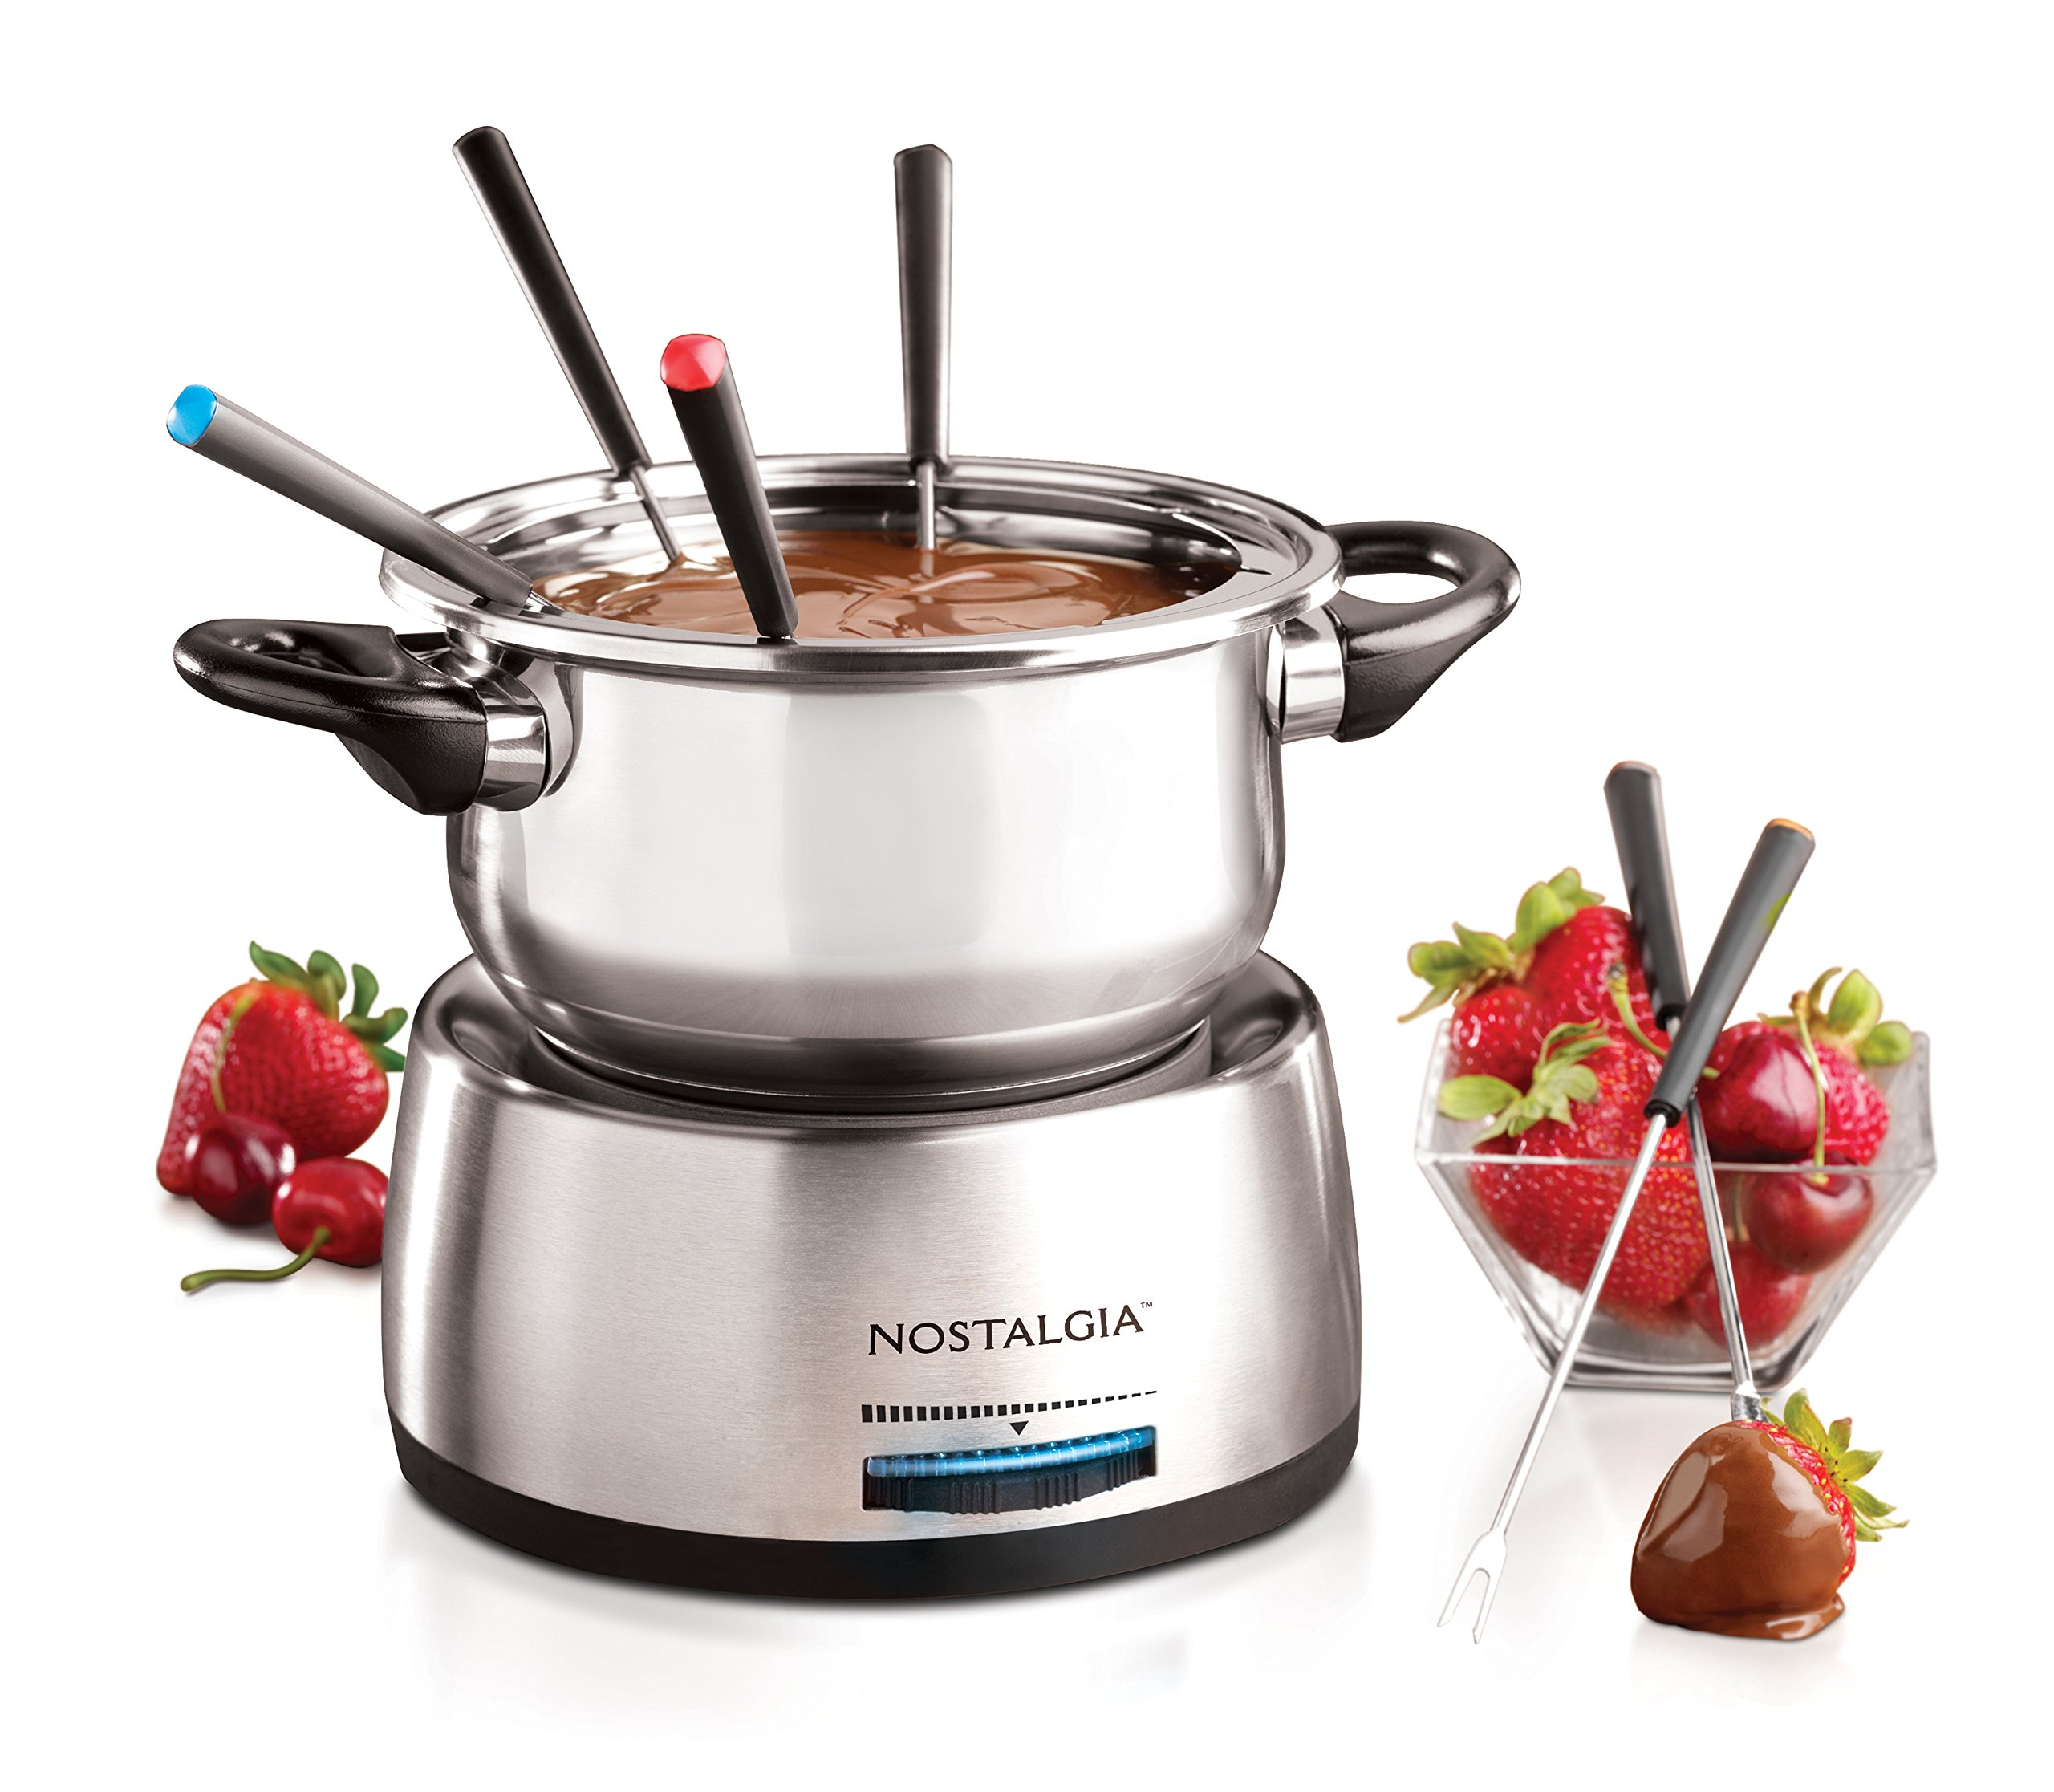 Nostalgia FPS200 6-Cup Stainless Steel Electric Fondue Pot with Temperature Control, 6 Color-Coded Forks and Removable Pot - Perfect for Chocolate, Caramel, Cheese, Sauces and More by Nostalgia